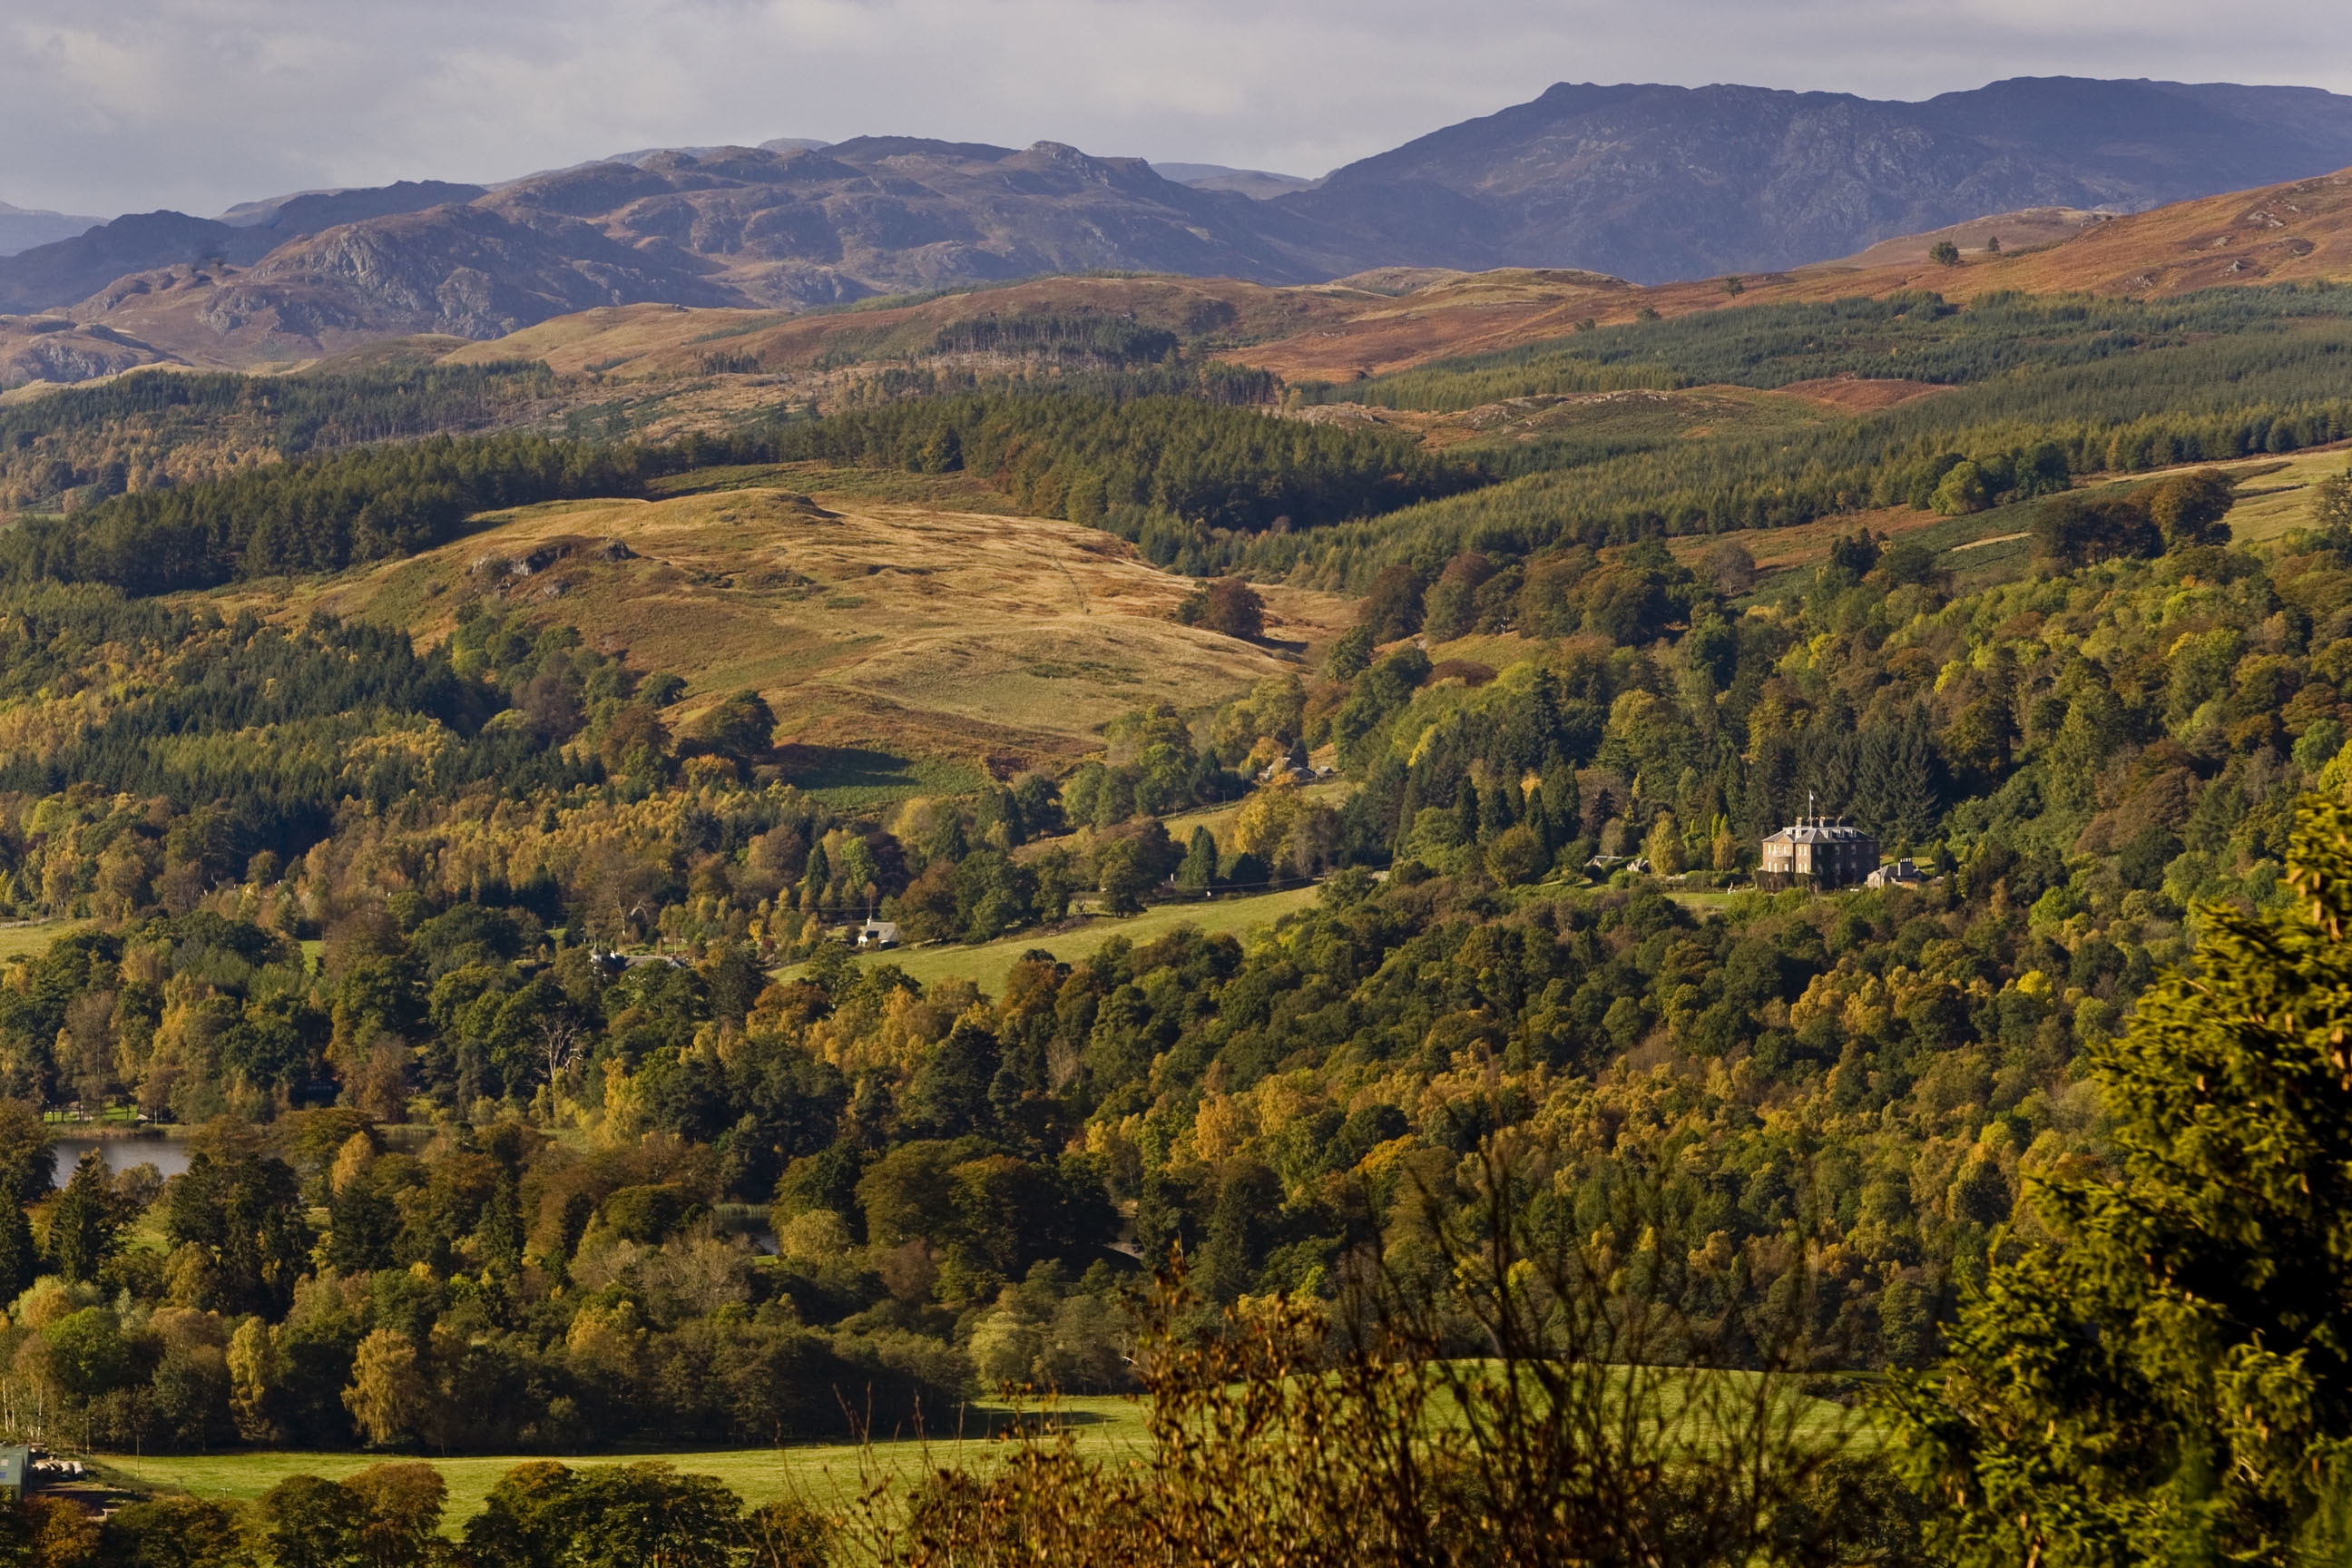 Merging parts of rural Perthshire with industrial Fife do not make sense, said members of the public.